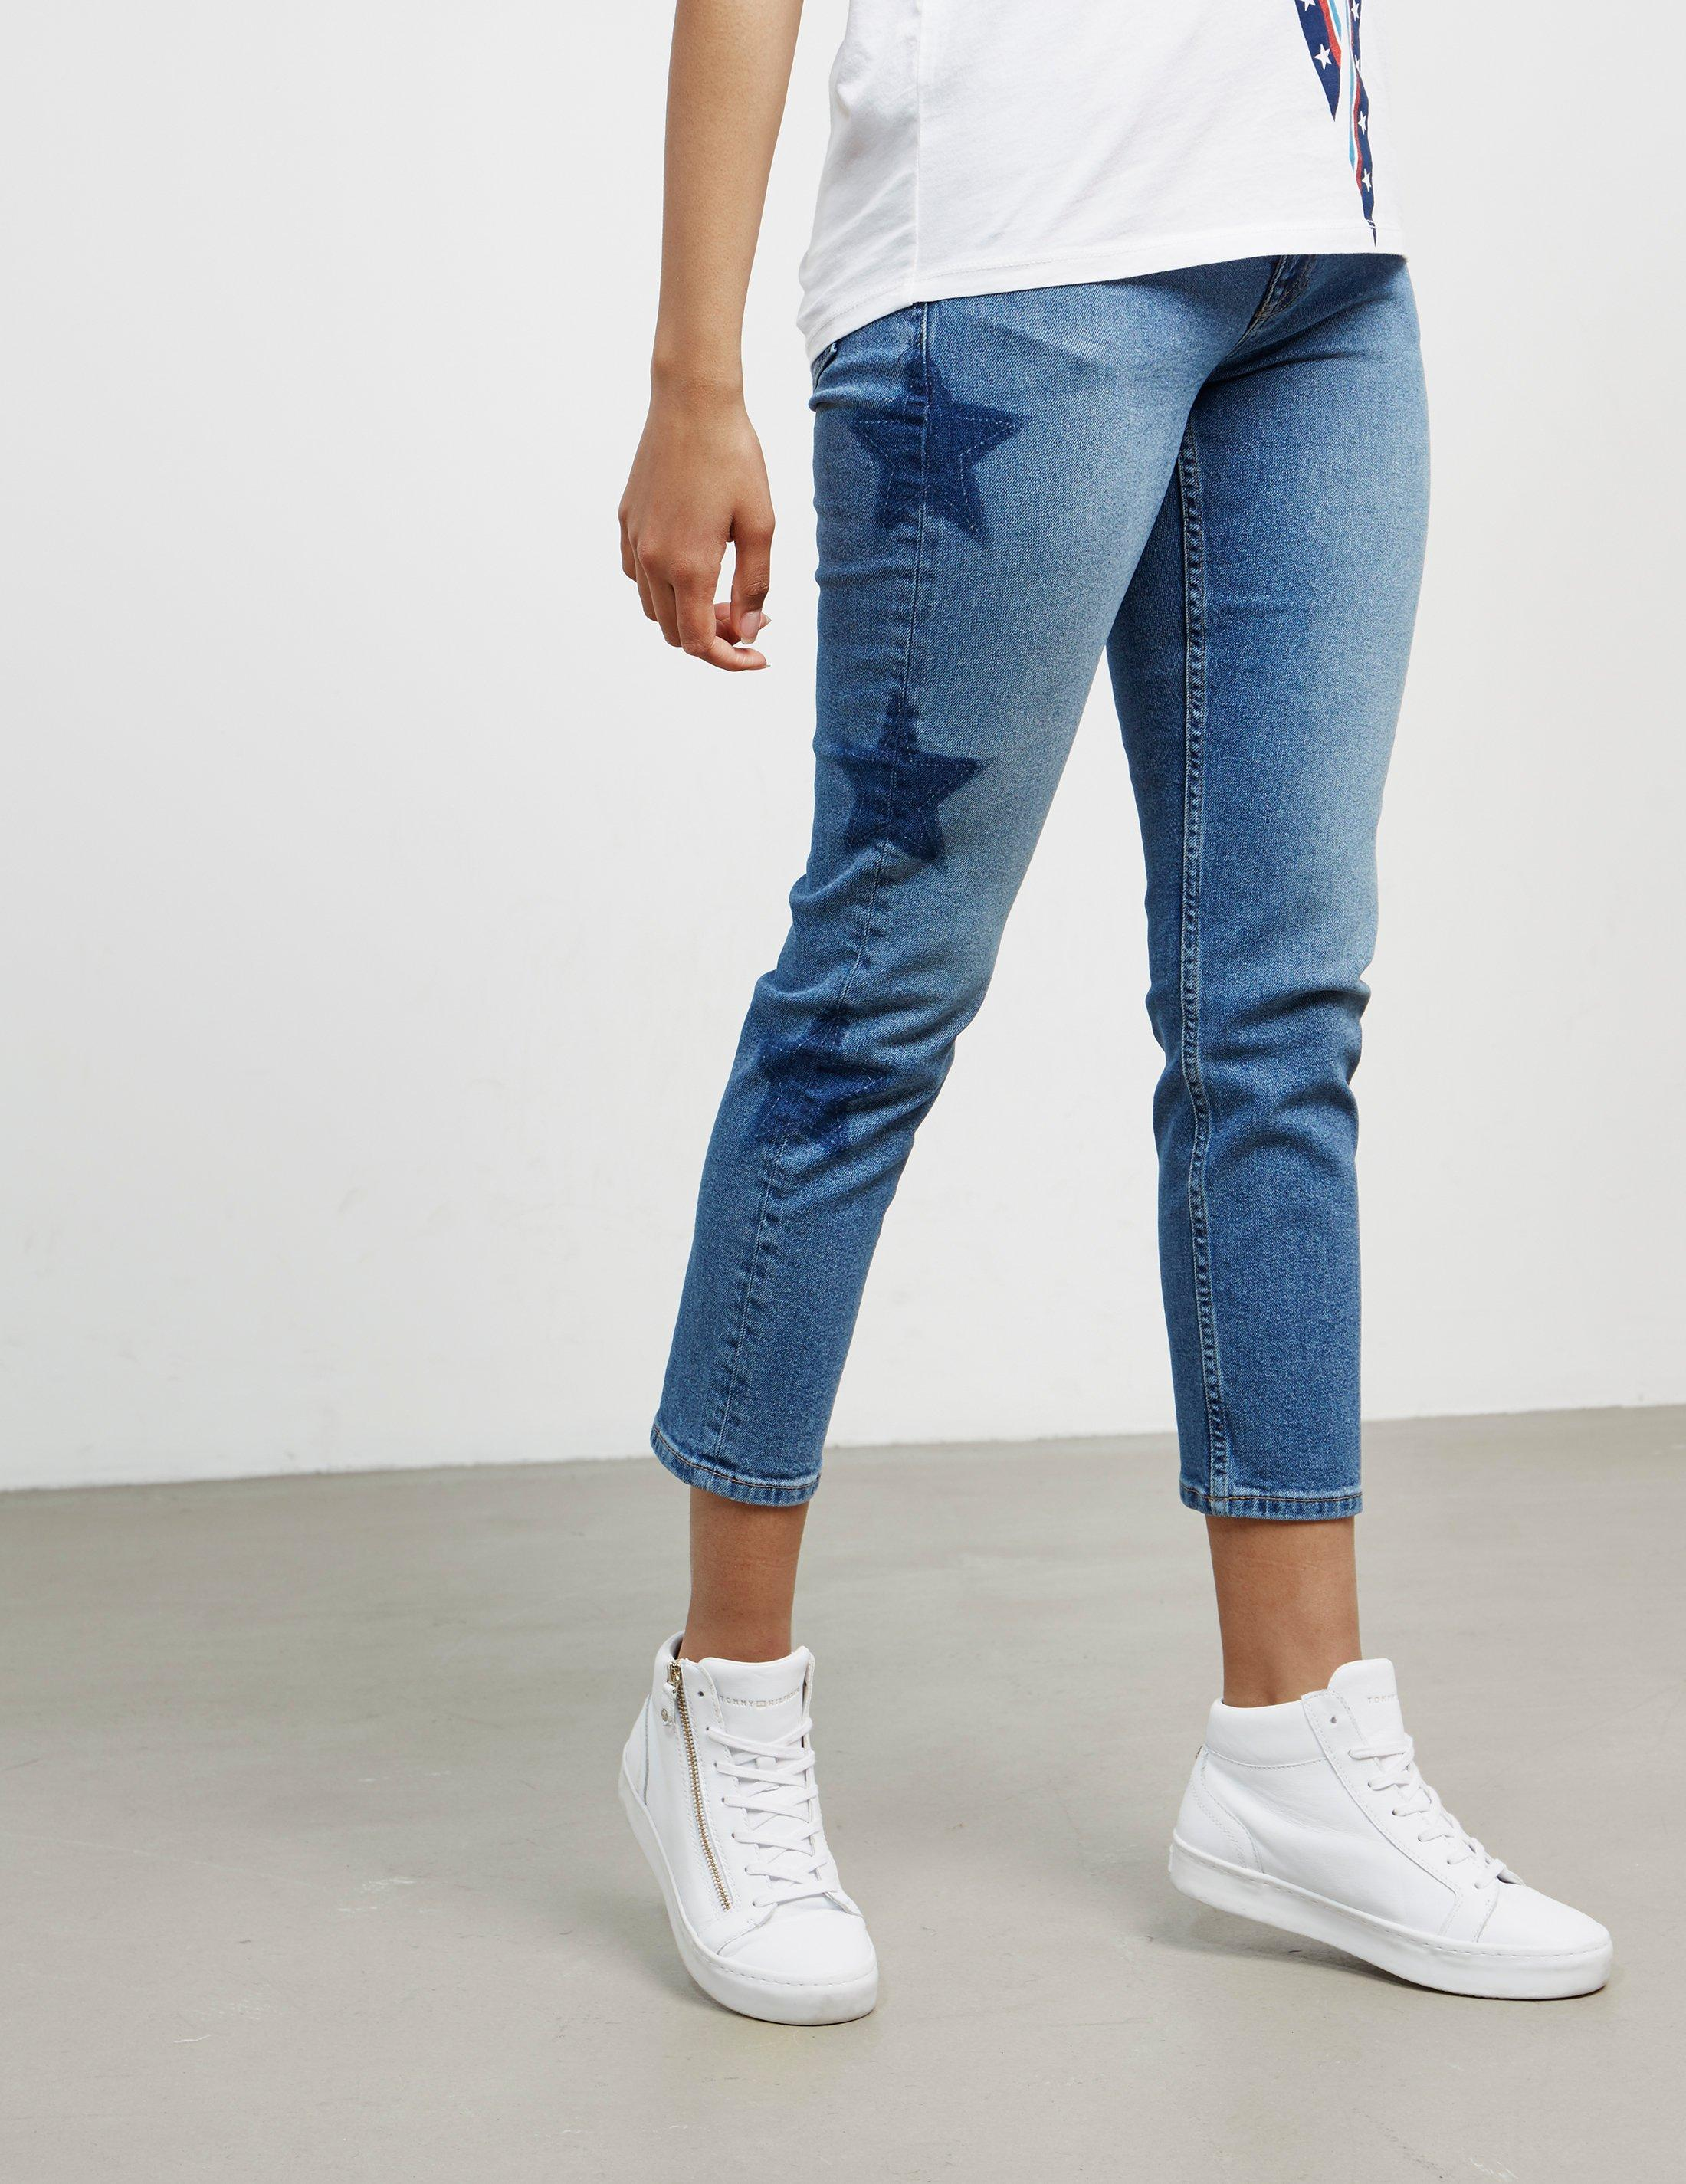 395c28d02 Tommy Hilfiger Slim Izzy Star Jeans Blue in Blue - Lyst